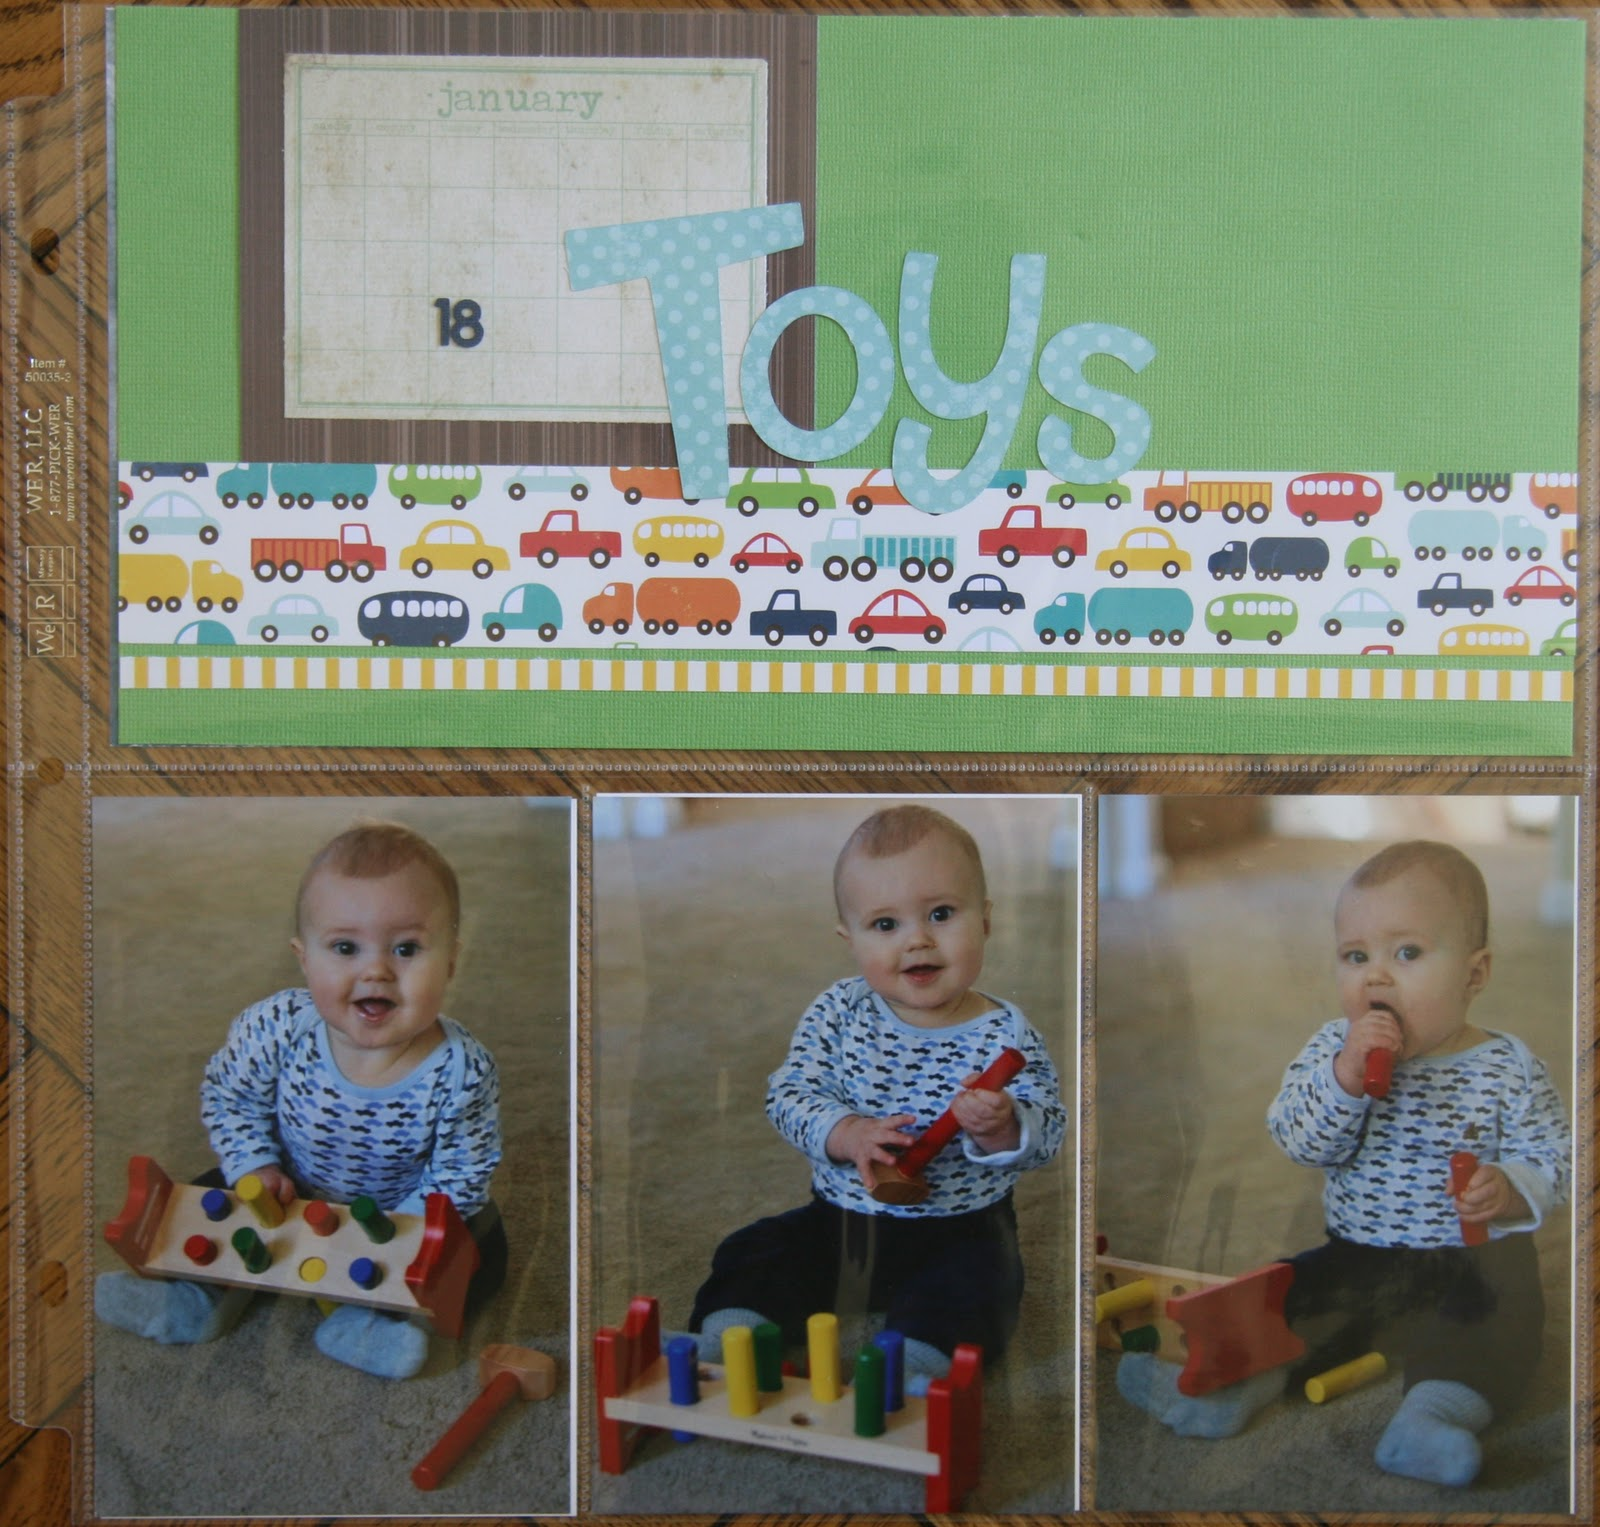 How to scrapbook without page protectors - Here Is Another Quick Layout Created With The We R Memory Keepers Divided Page Protectors I Am Using These To Help Get Caught Up On Scrapbooking Without